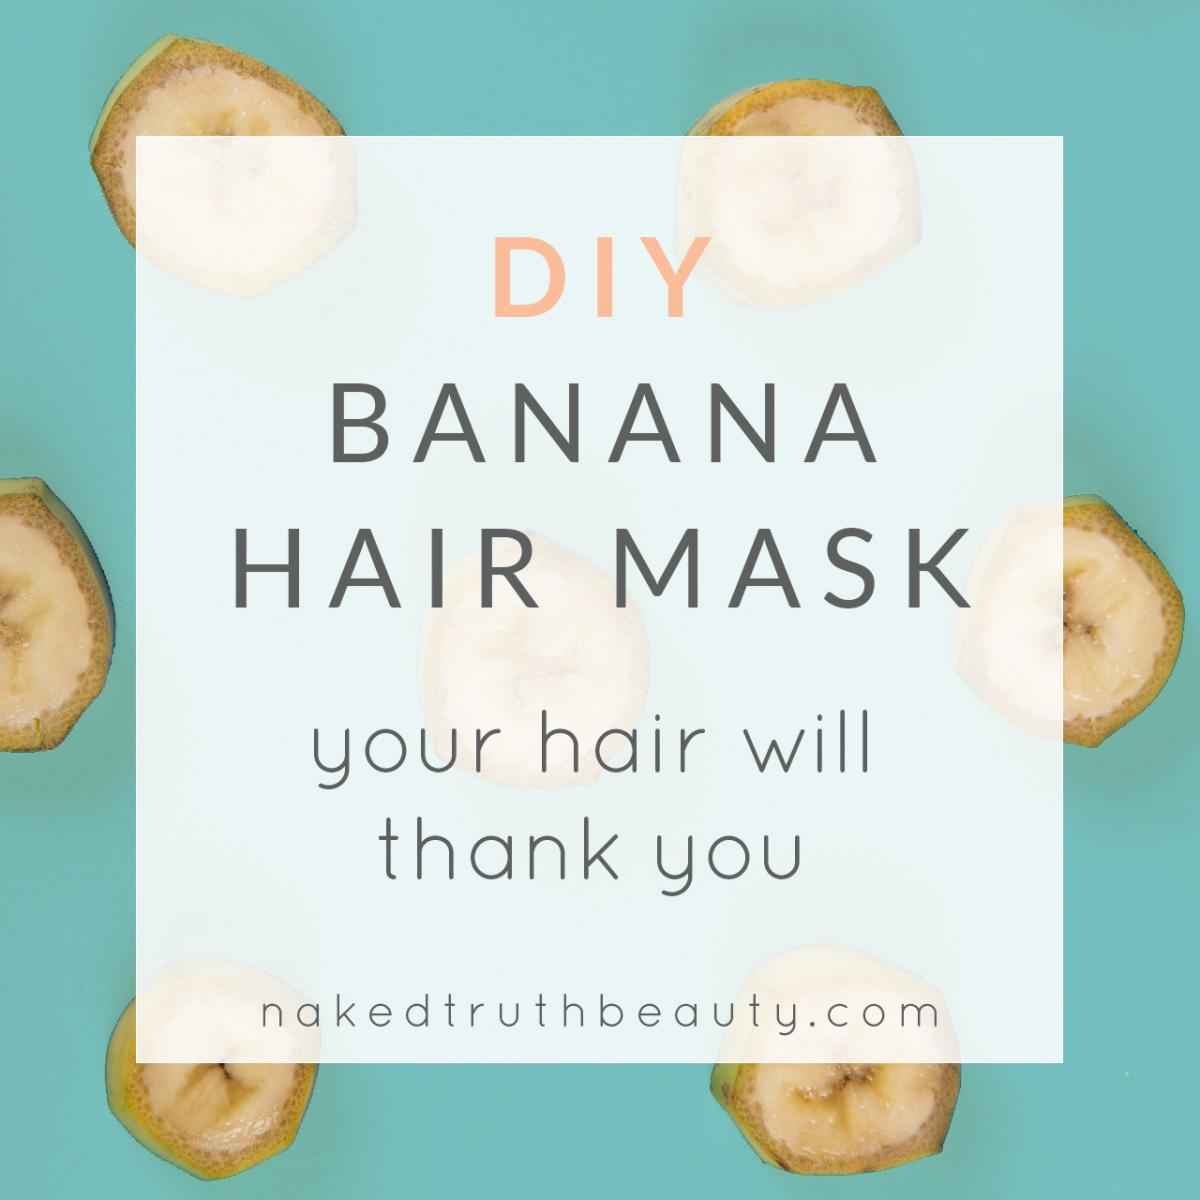 DIY banana hair mask with honey, egg, and avocado